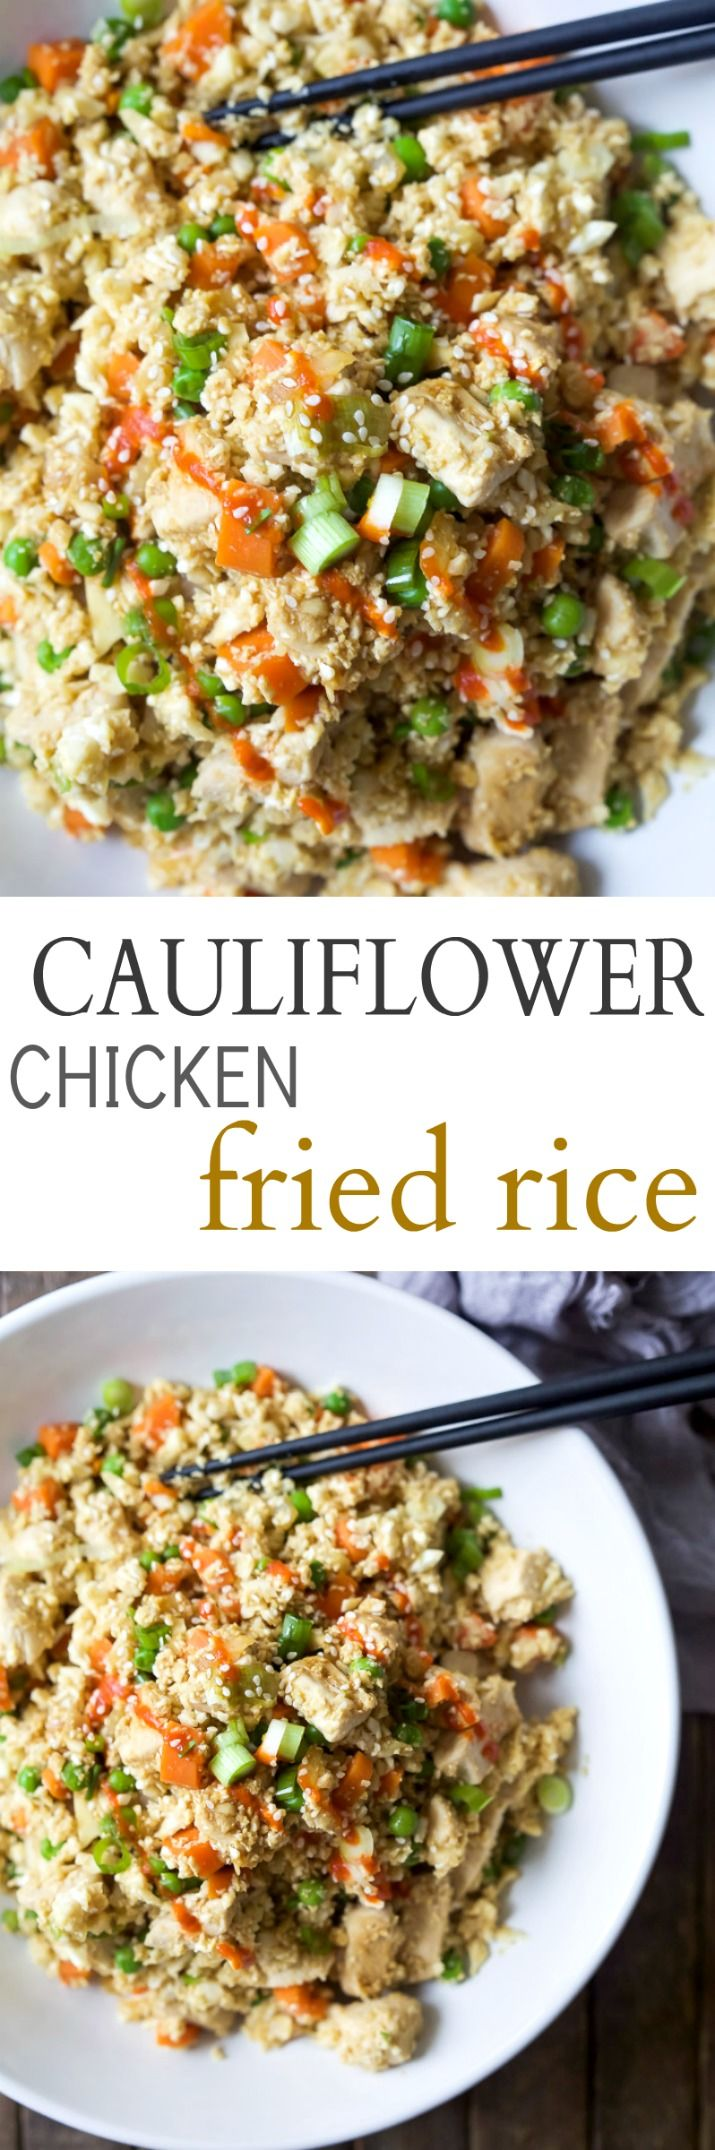 Easy 15 Minute Cauliflower Chicken Fried Rice that's way better than takeout and tons healthier for you, clocking in at a whopping 205 calories a serving! PS you're kids will never know its cauliflower not rice! | joyfulhealthyeats.com #glutenfree